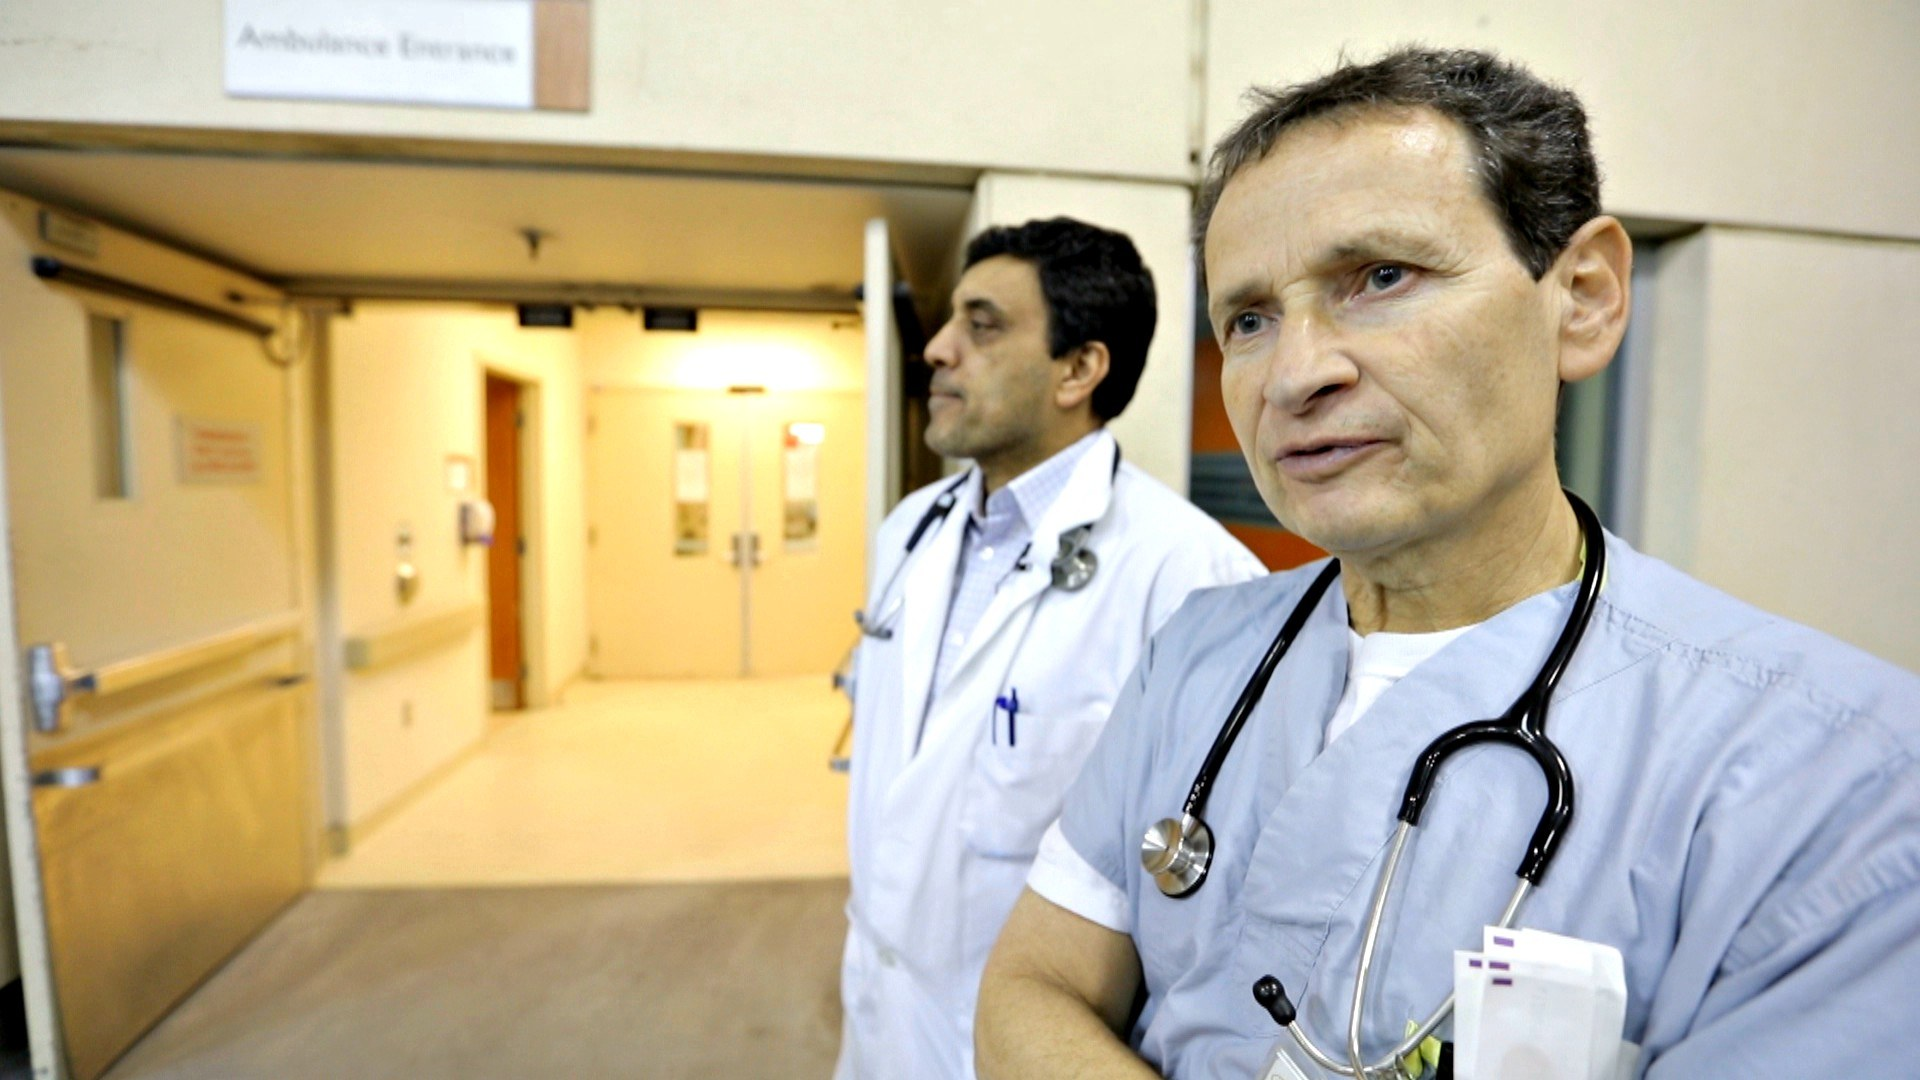 Dr. Naveed Mohammad and Dr. Oscar Karbi gaze out at the ambulance bay. (Paul Borkwood/CBC News)